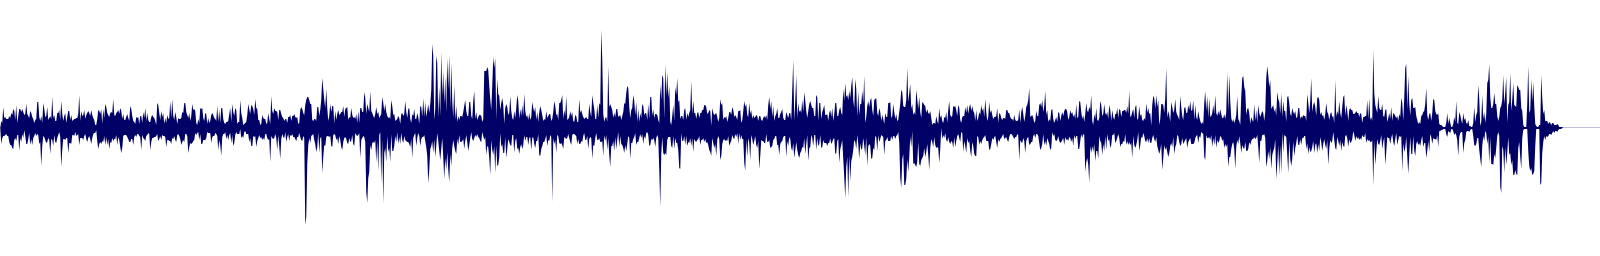 waveform of track #141550